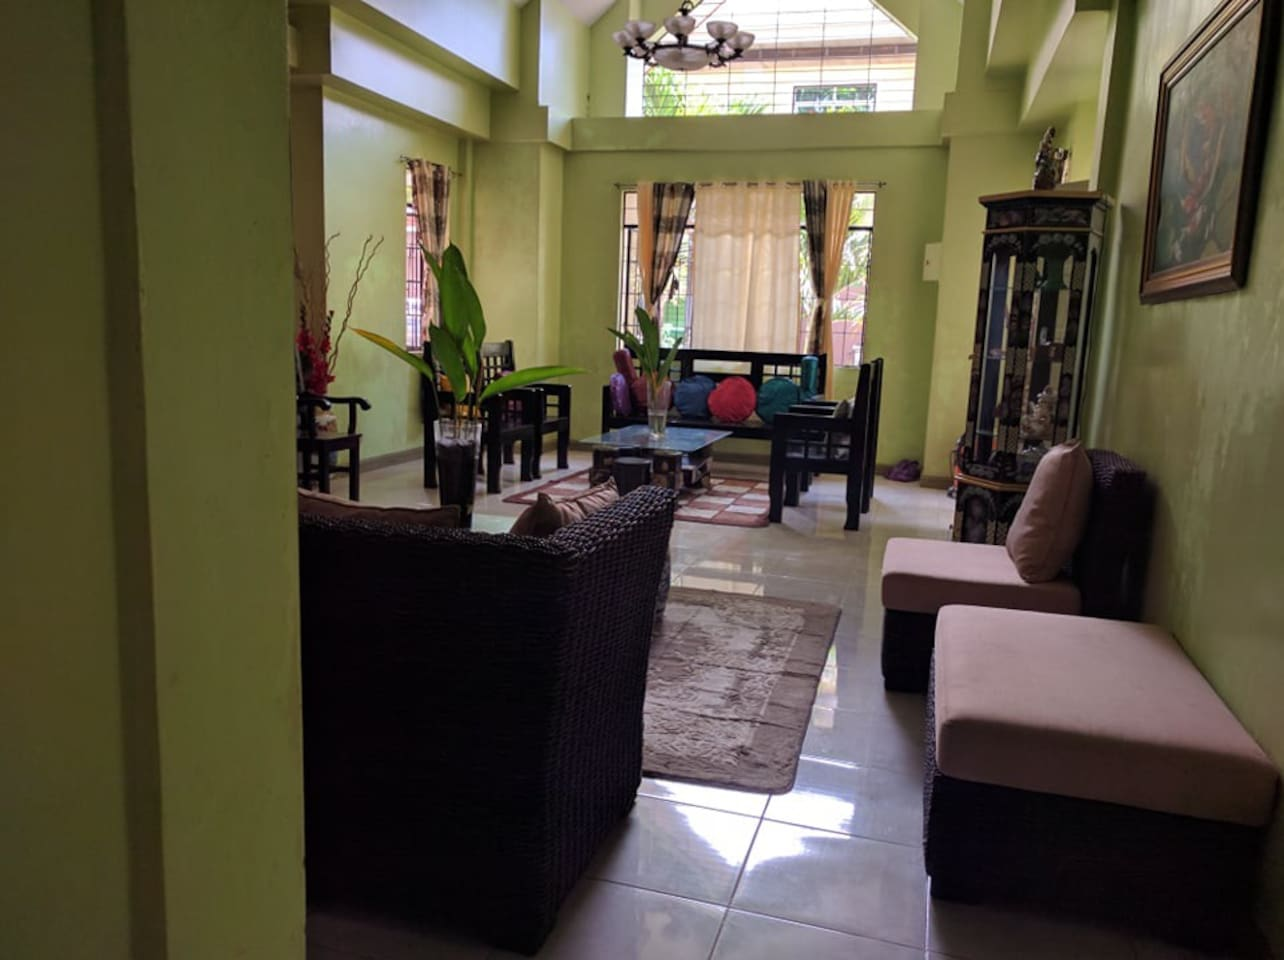 Our main living room, perfect place to chat with fiends and family.